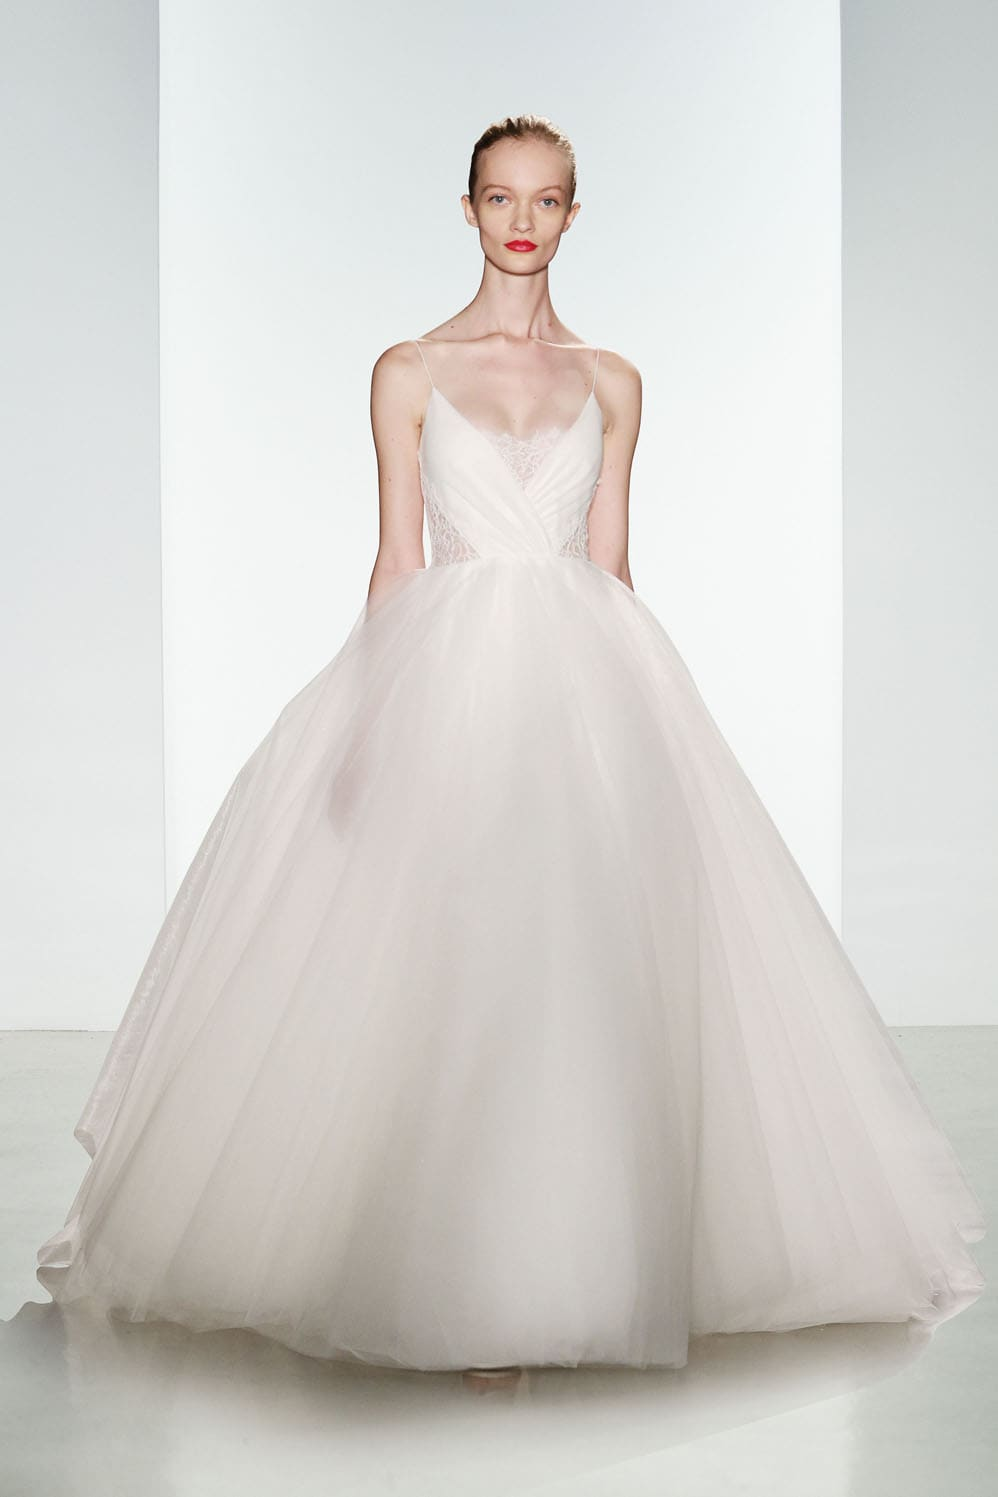 Penny by christos tulle ballgown wedding dress for Dress up wedding dresses